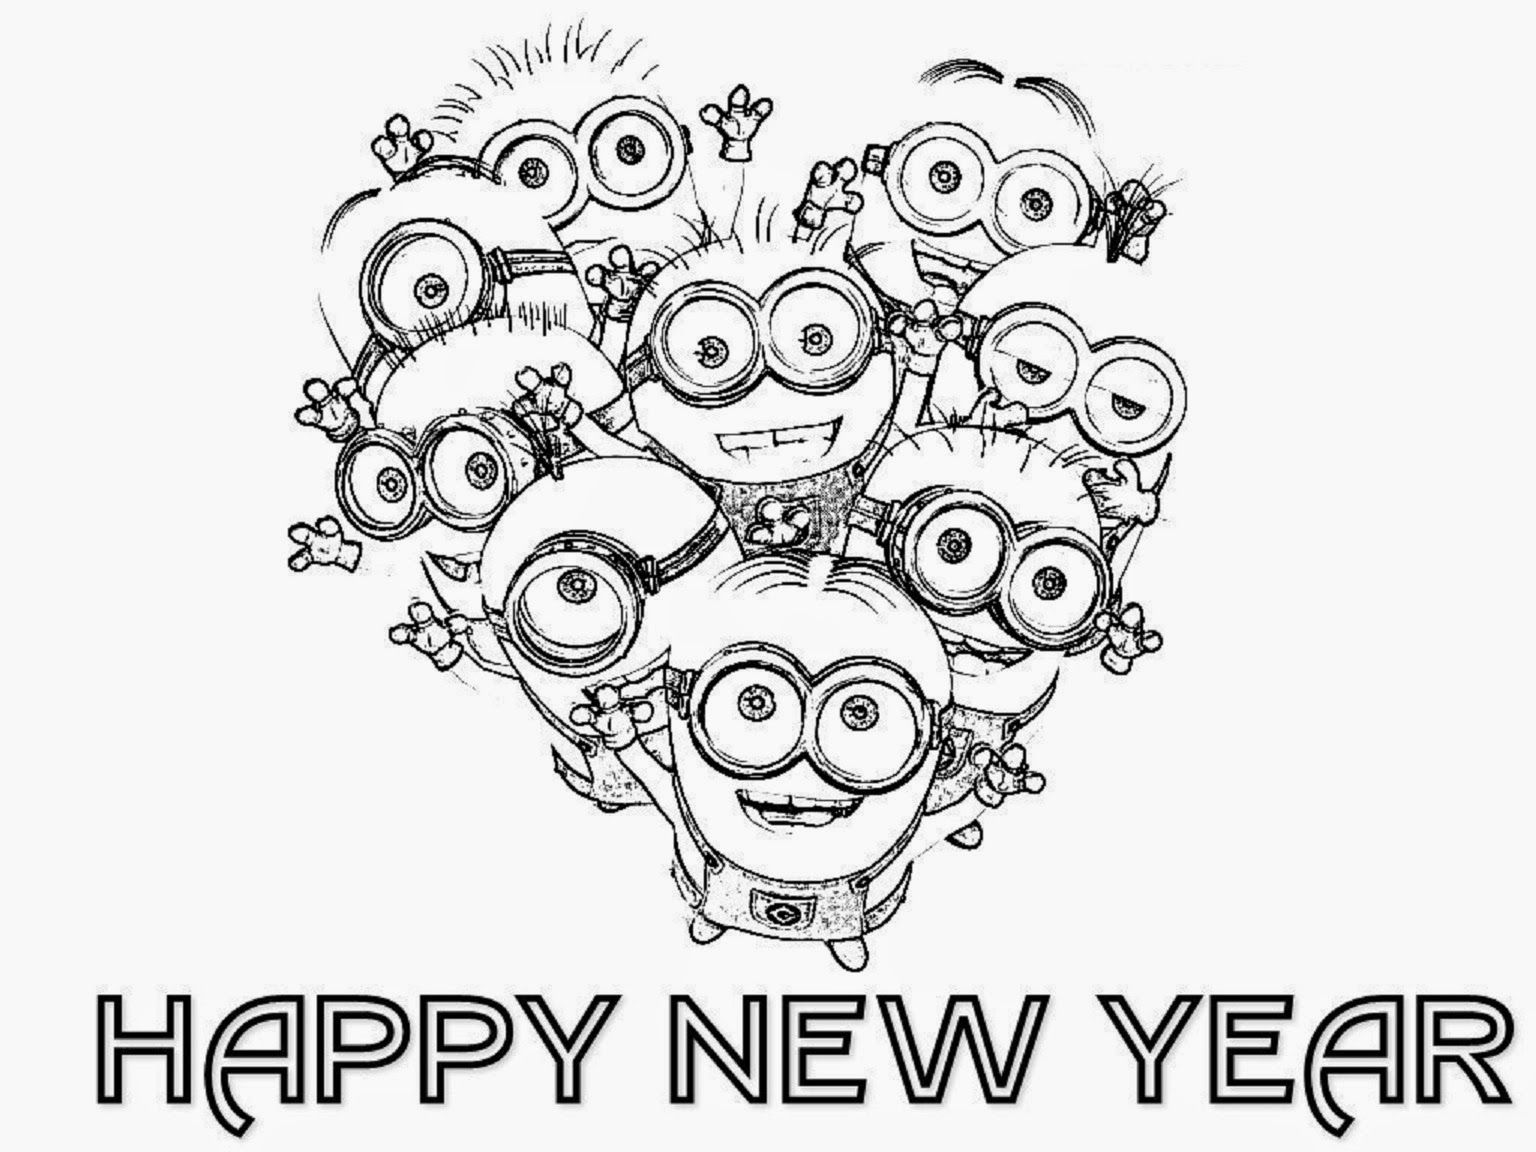 minion happy new year coloring page for kids - New Year Coloring Pages